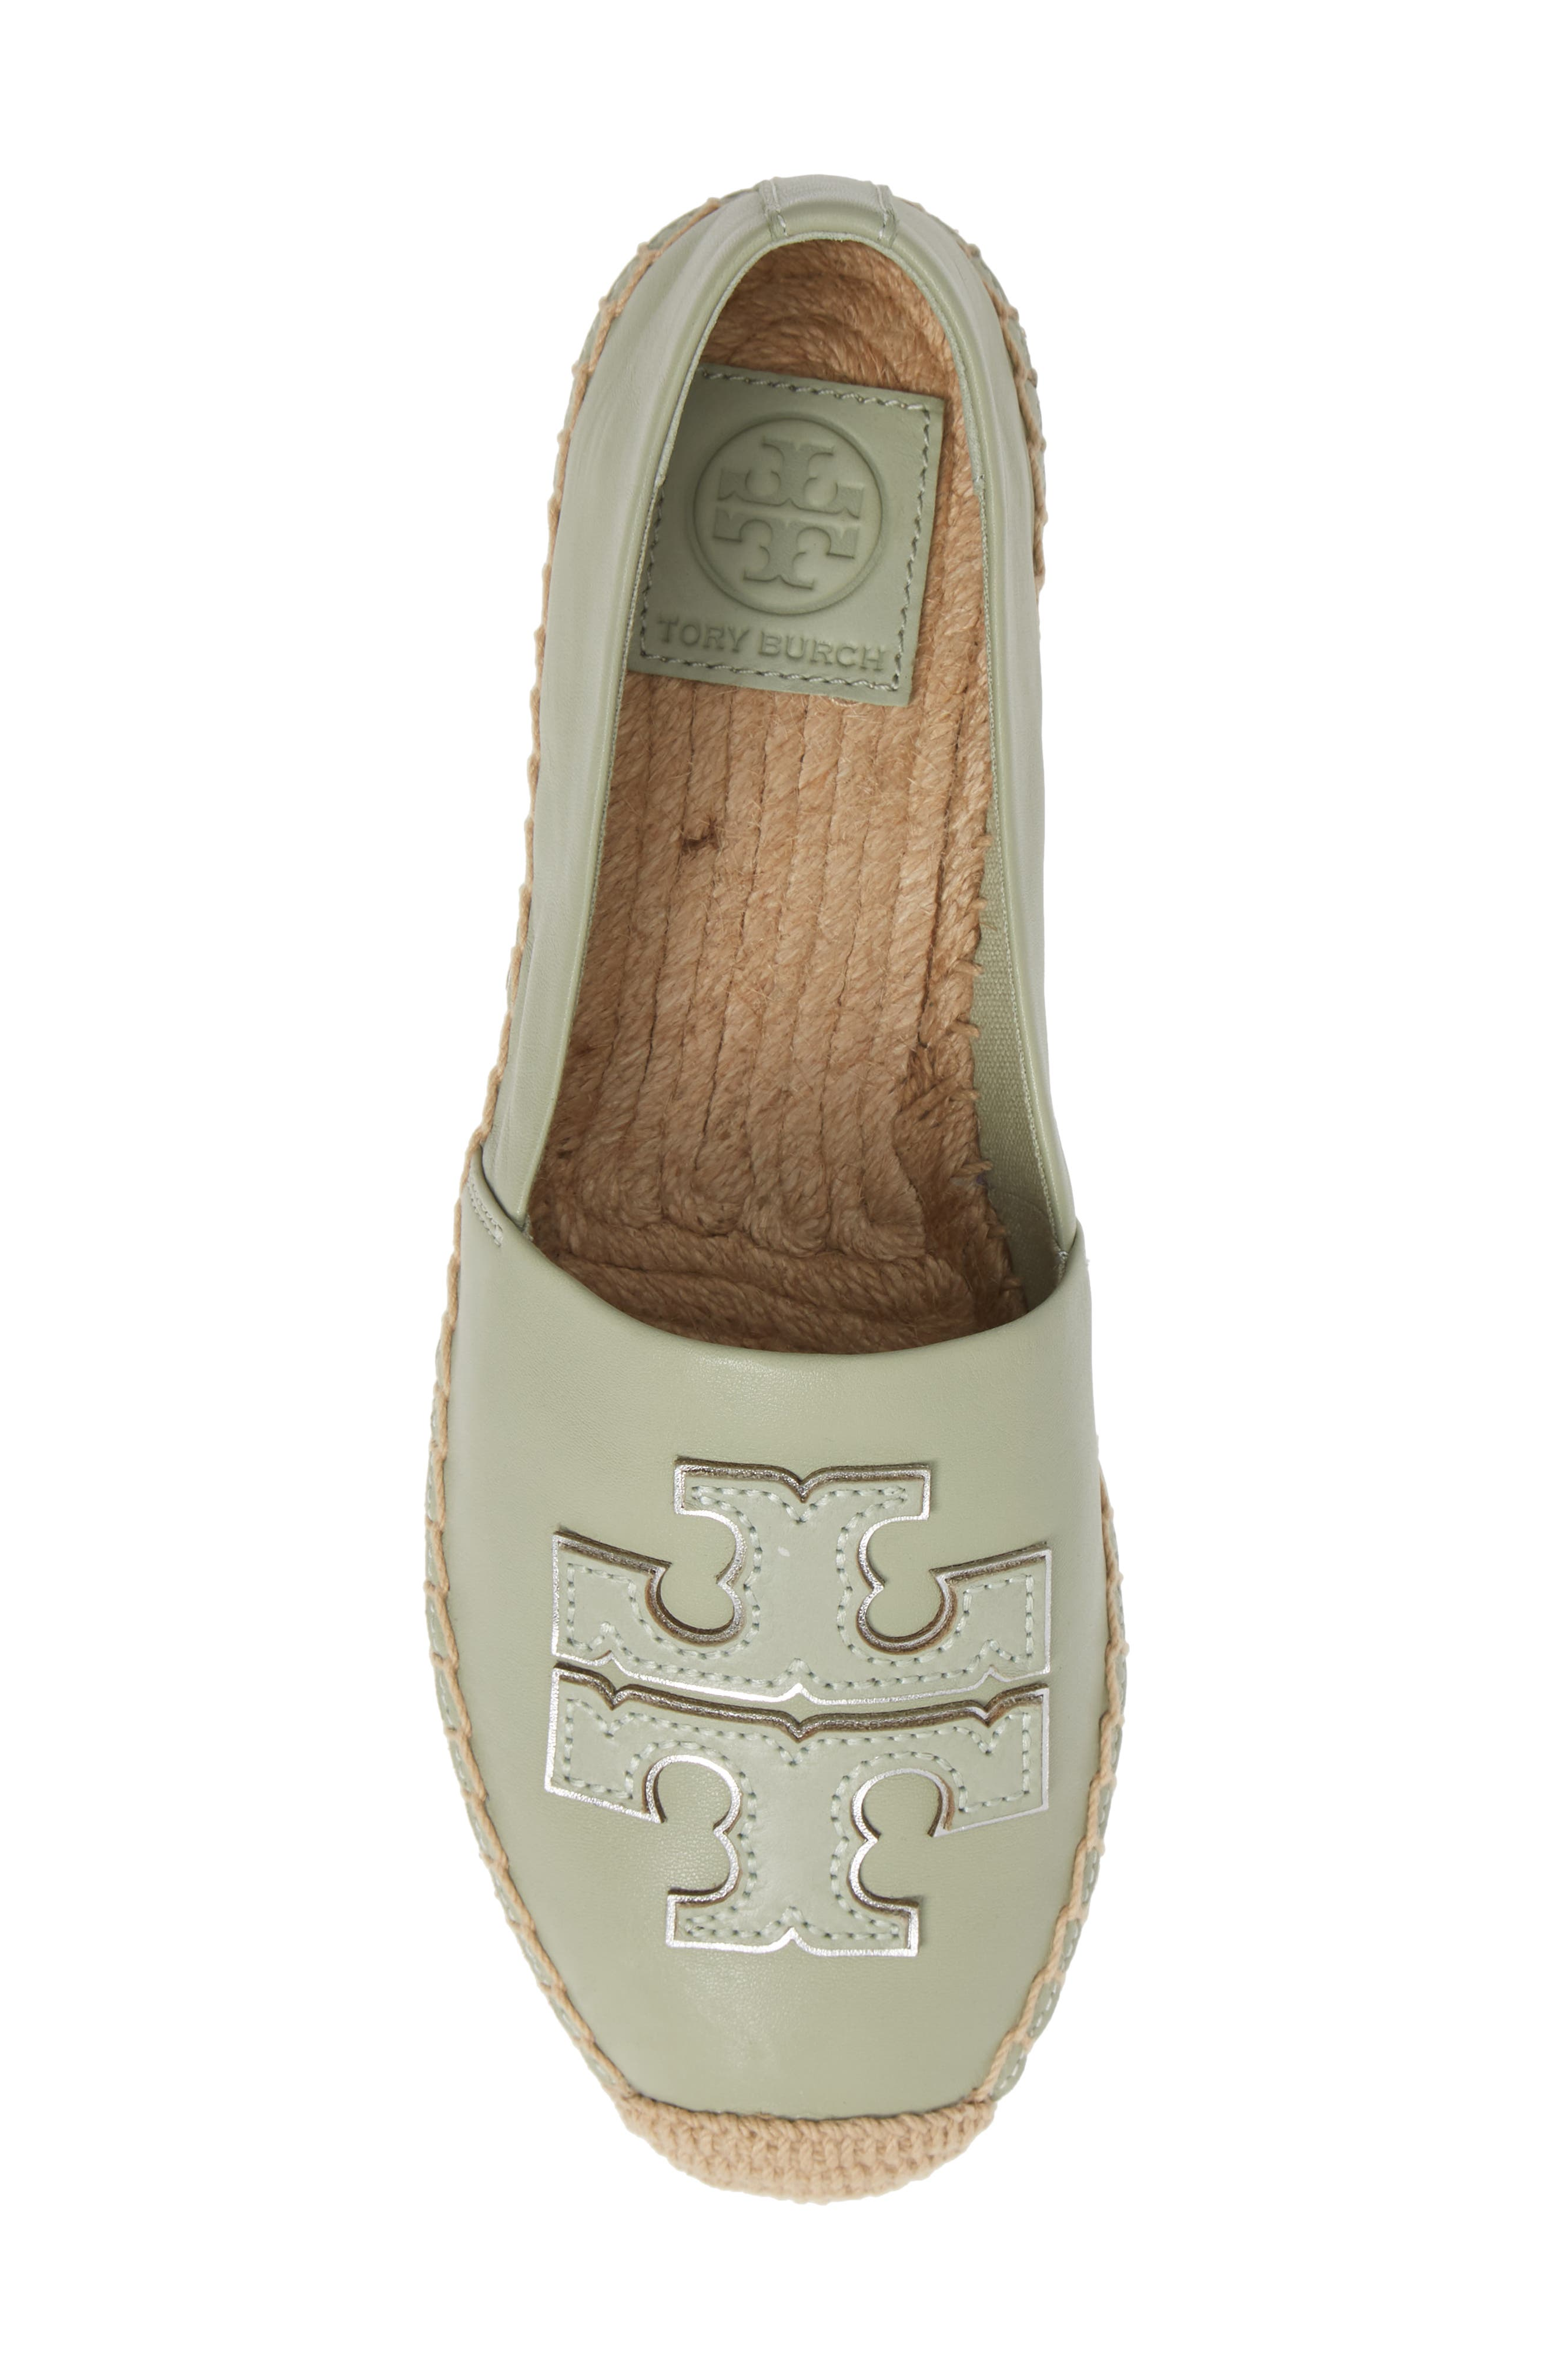 TORY BURCH, Ines Espadrille, Alternate thumbnail 5, color, GARDEN SAGE / SILVER